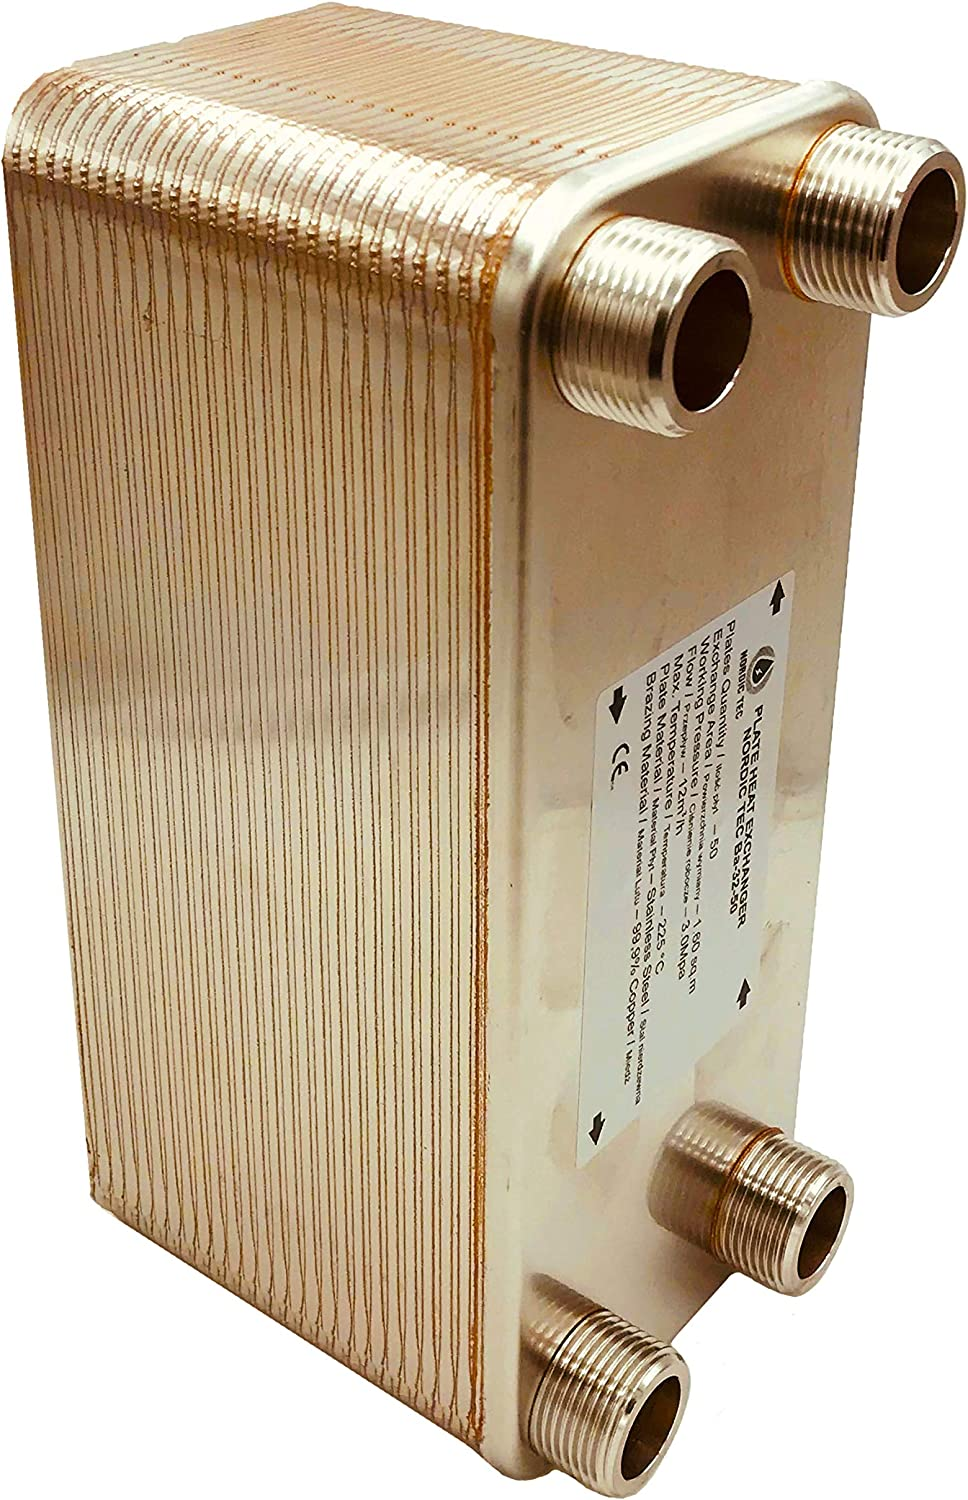 Nordic Tec Ba-32-50 Stainless Steel Plate Heat Exchanger 50 Plates 285 kW 1 Inch